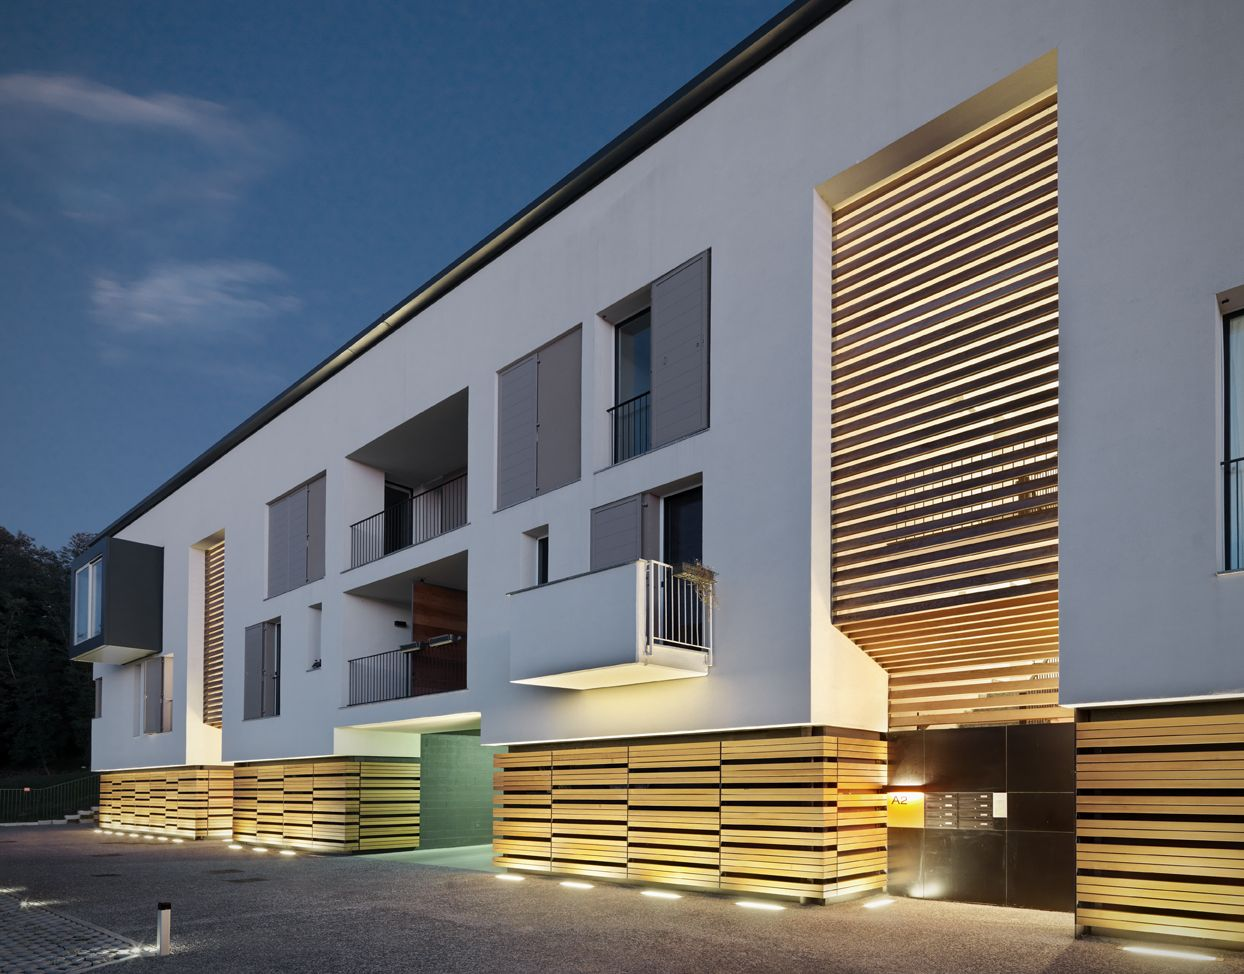 Residential-commercial complex in Azzate by Park Associati as Architects